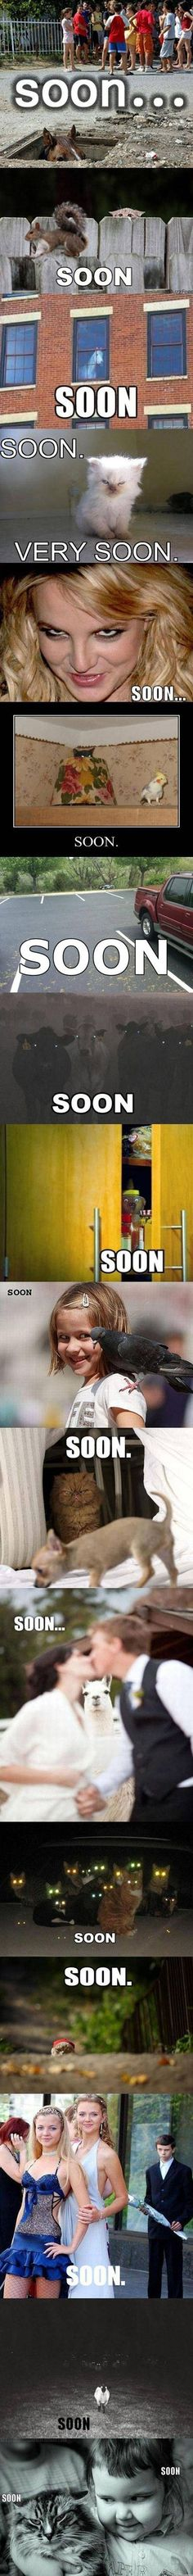 Funny - Soon Compilation - www.funny-pictures-blog.com